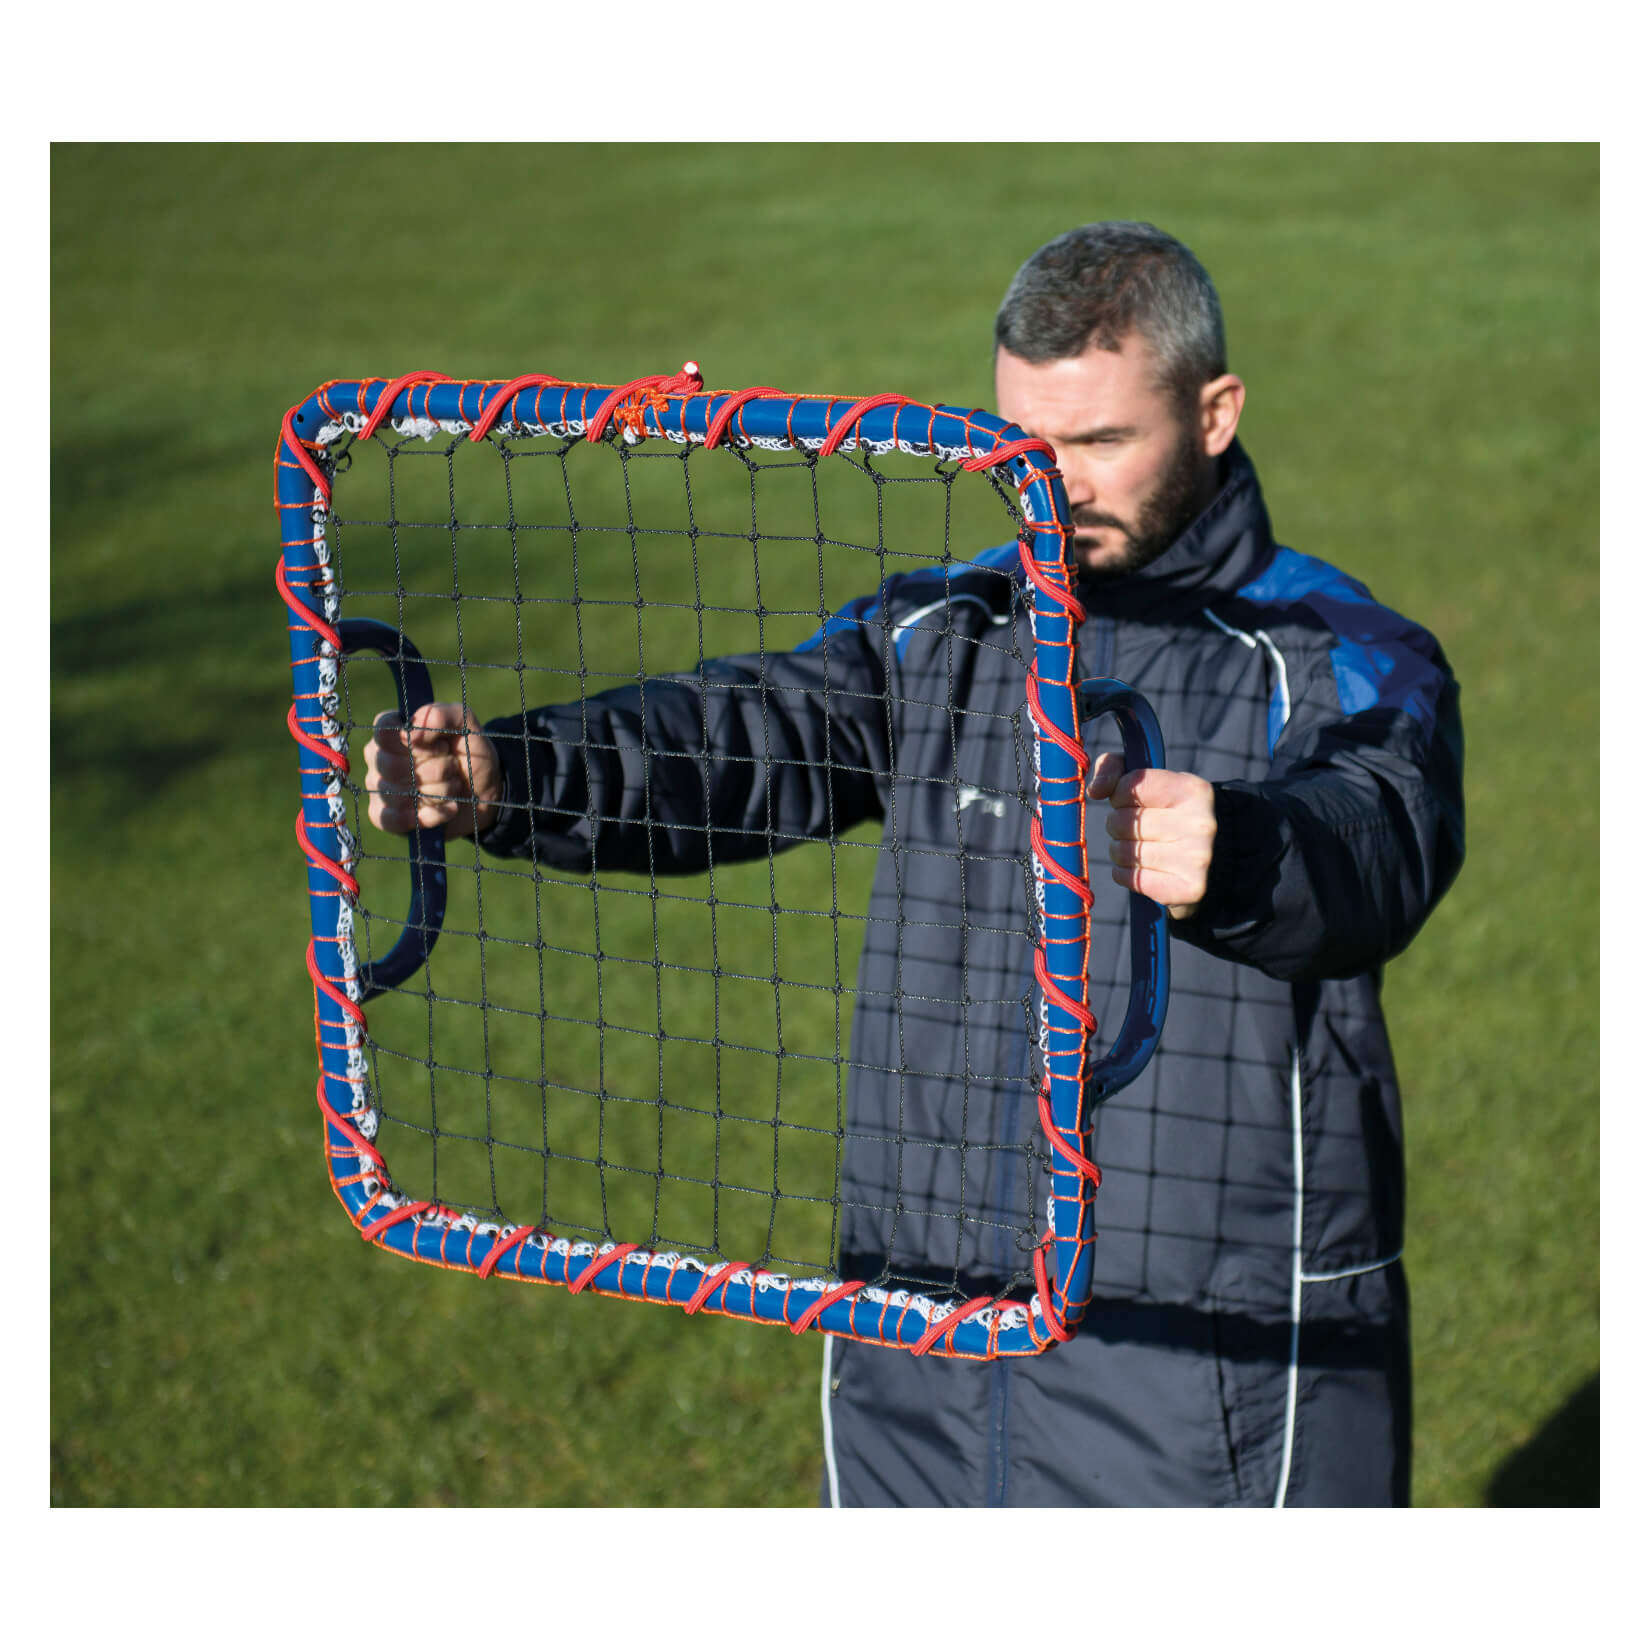 Precision Hand Held Rebounder